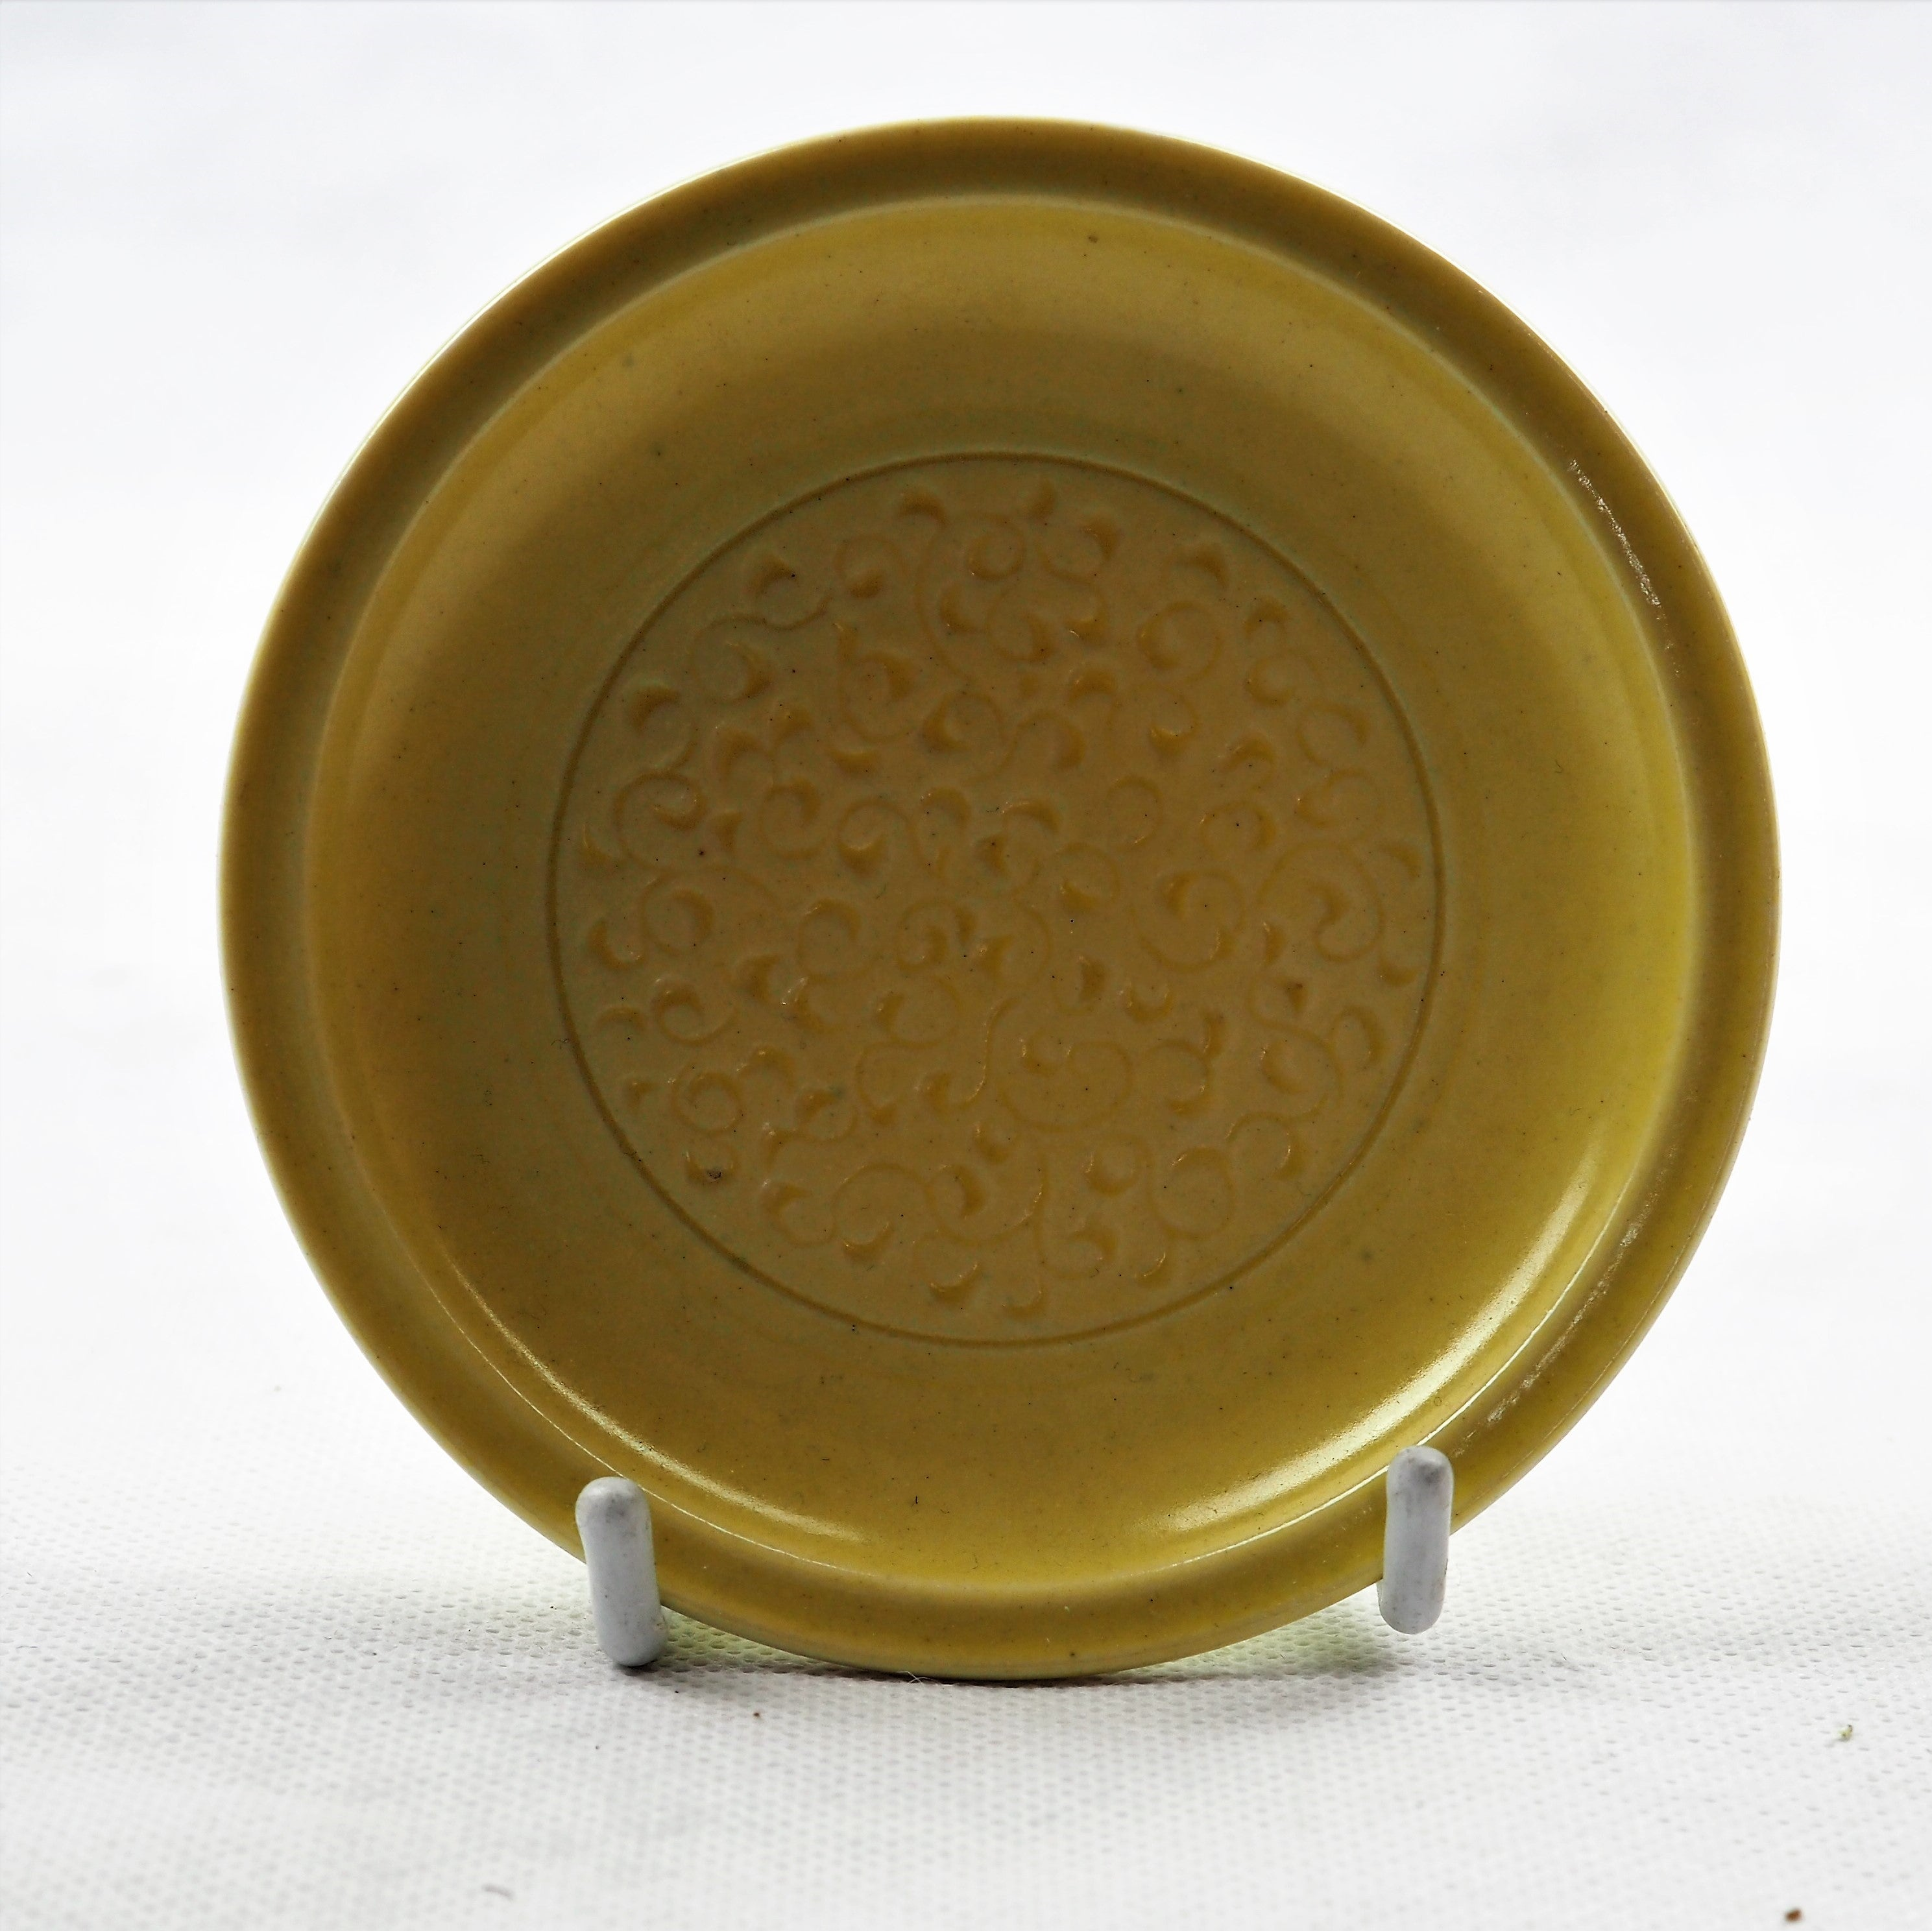 Spencer-Green, Alan – Small Yellow Porcelain Plate | Alan Spencer-Green | Primavera Gallery